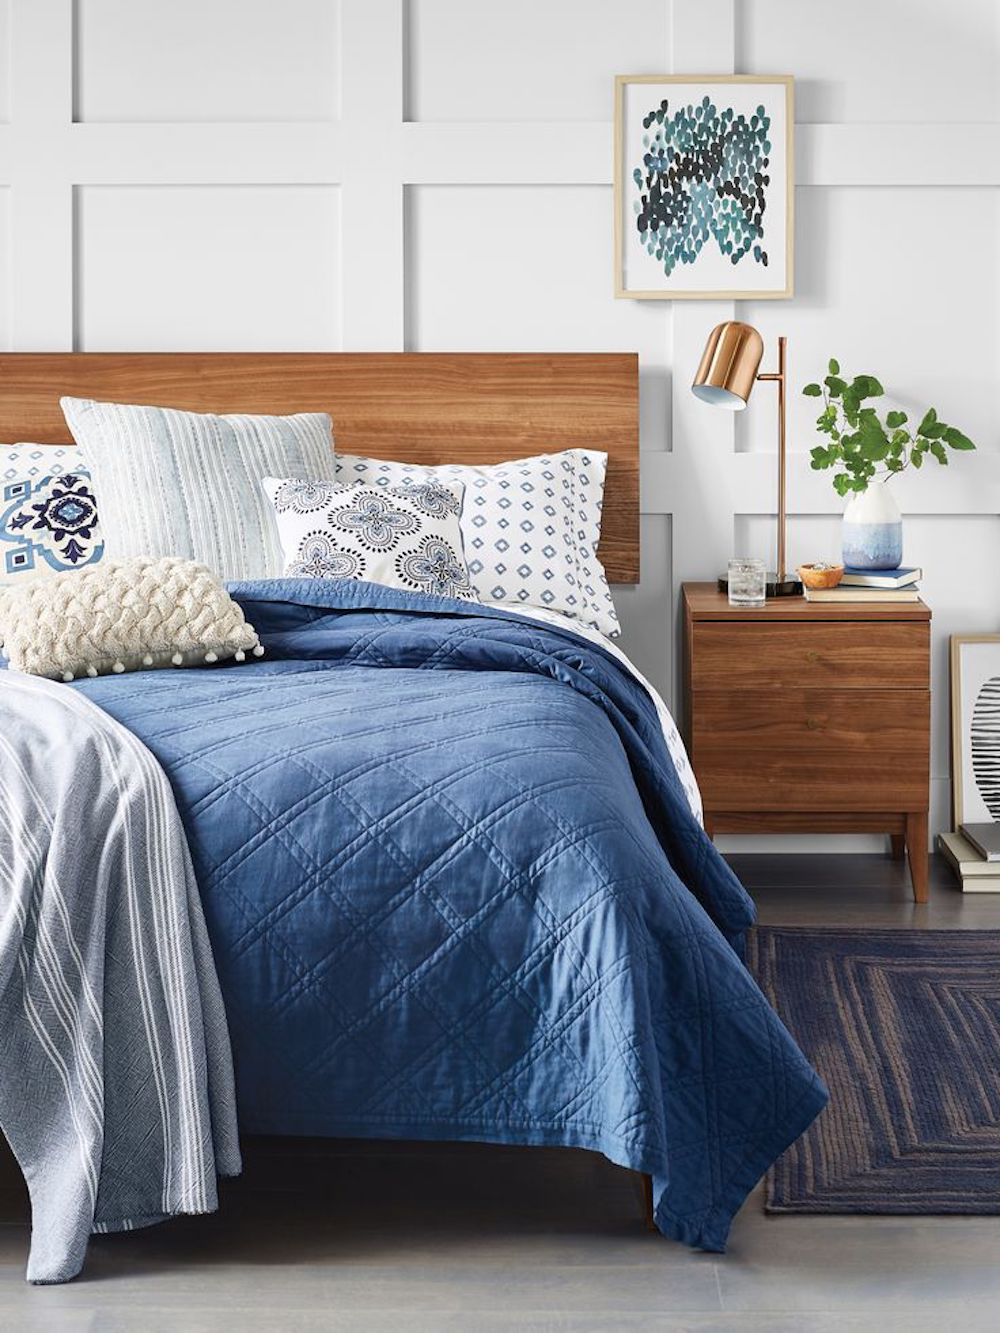 Bed with blue comforter and wooden headboard